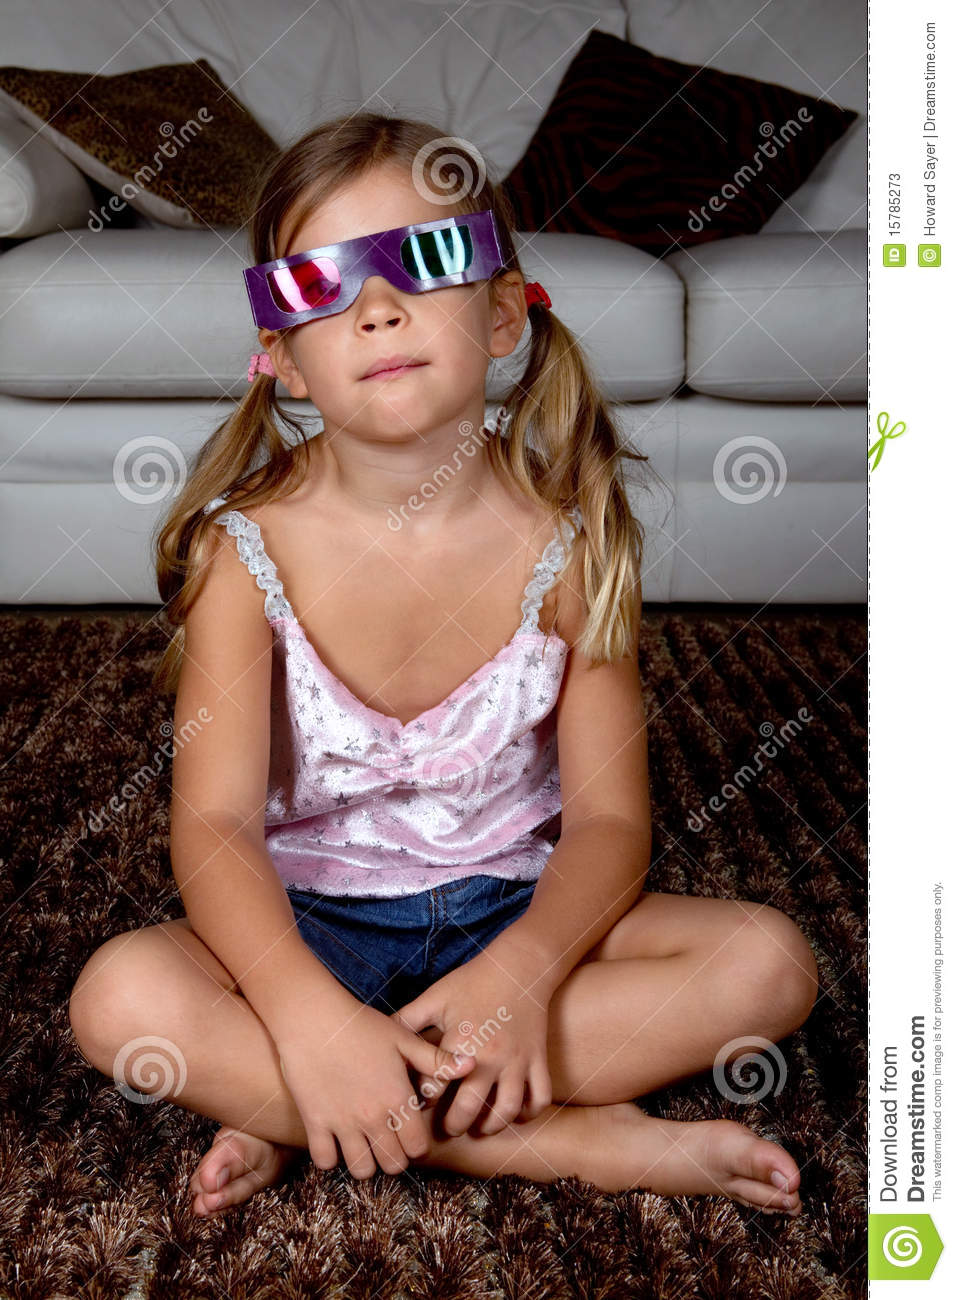 Girl Wearing 3D Glasses Stock Photos - Image: 15785273